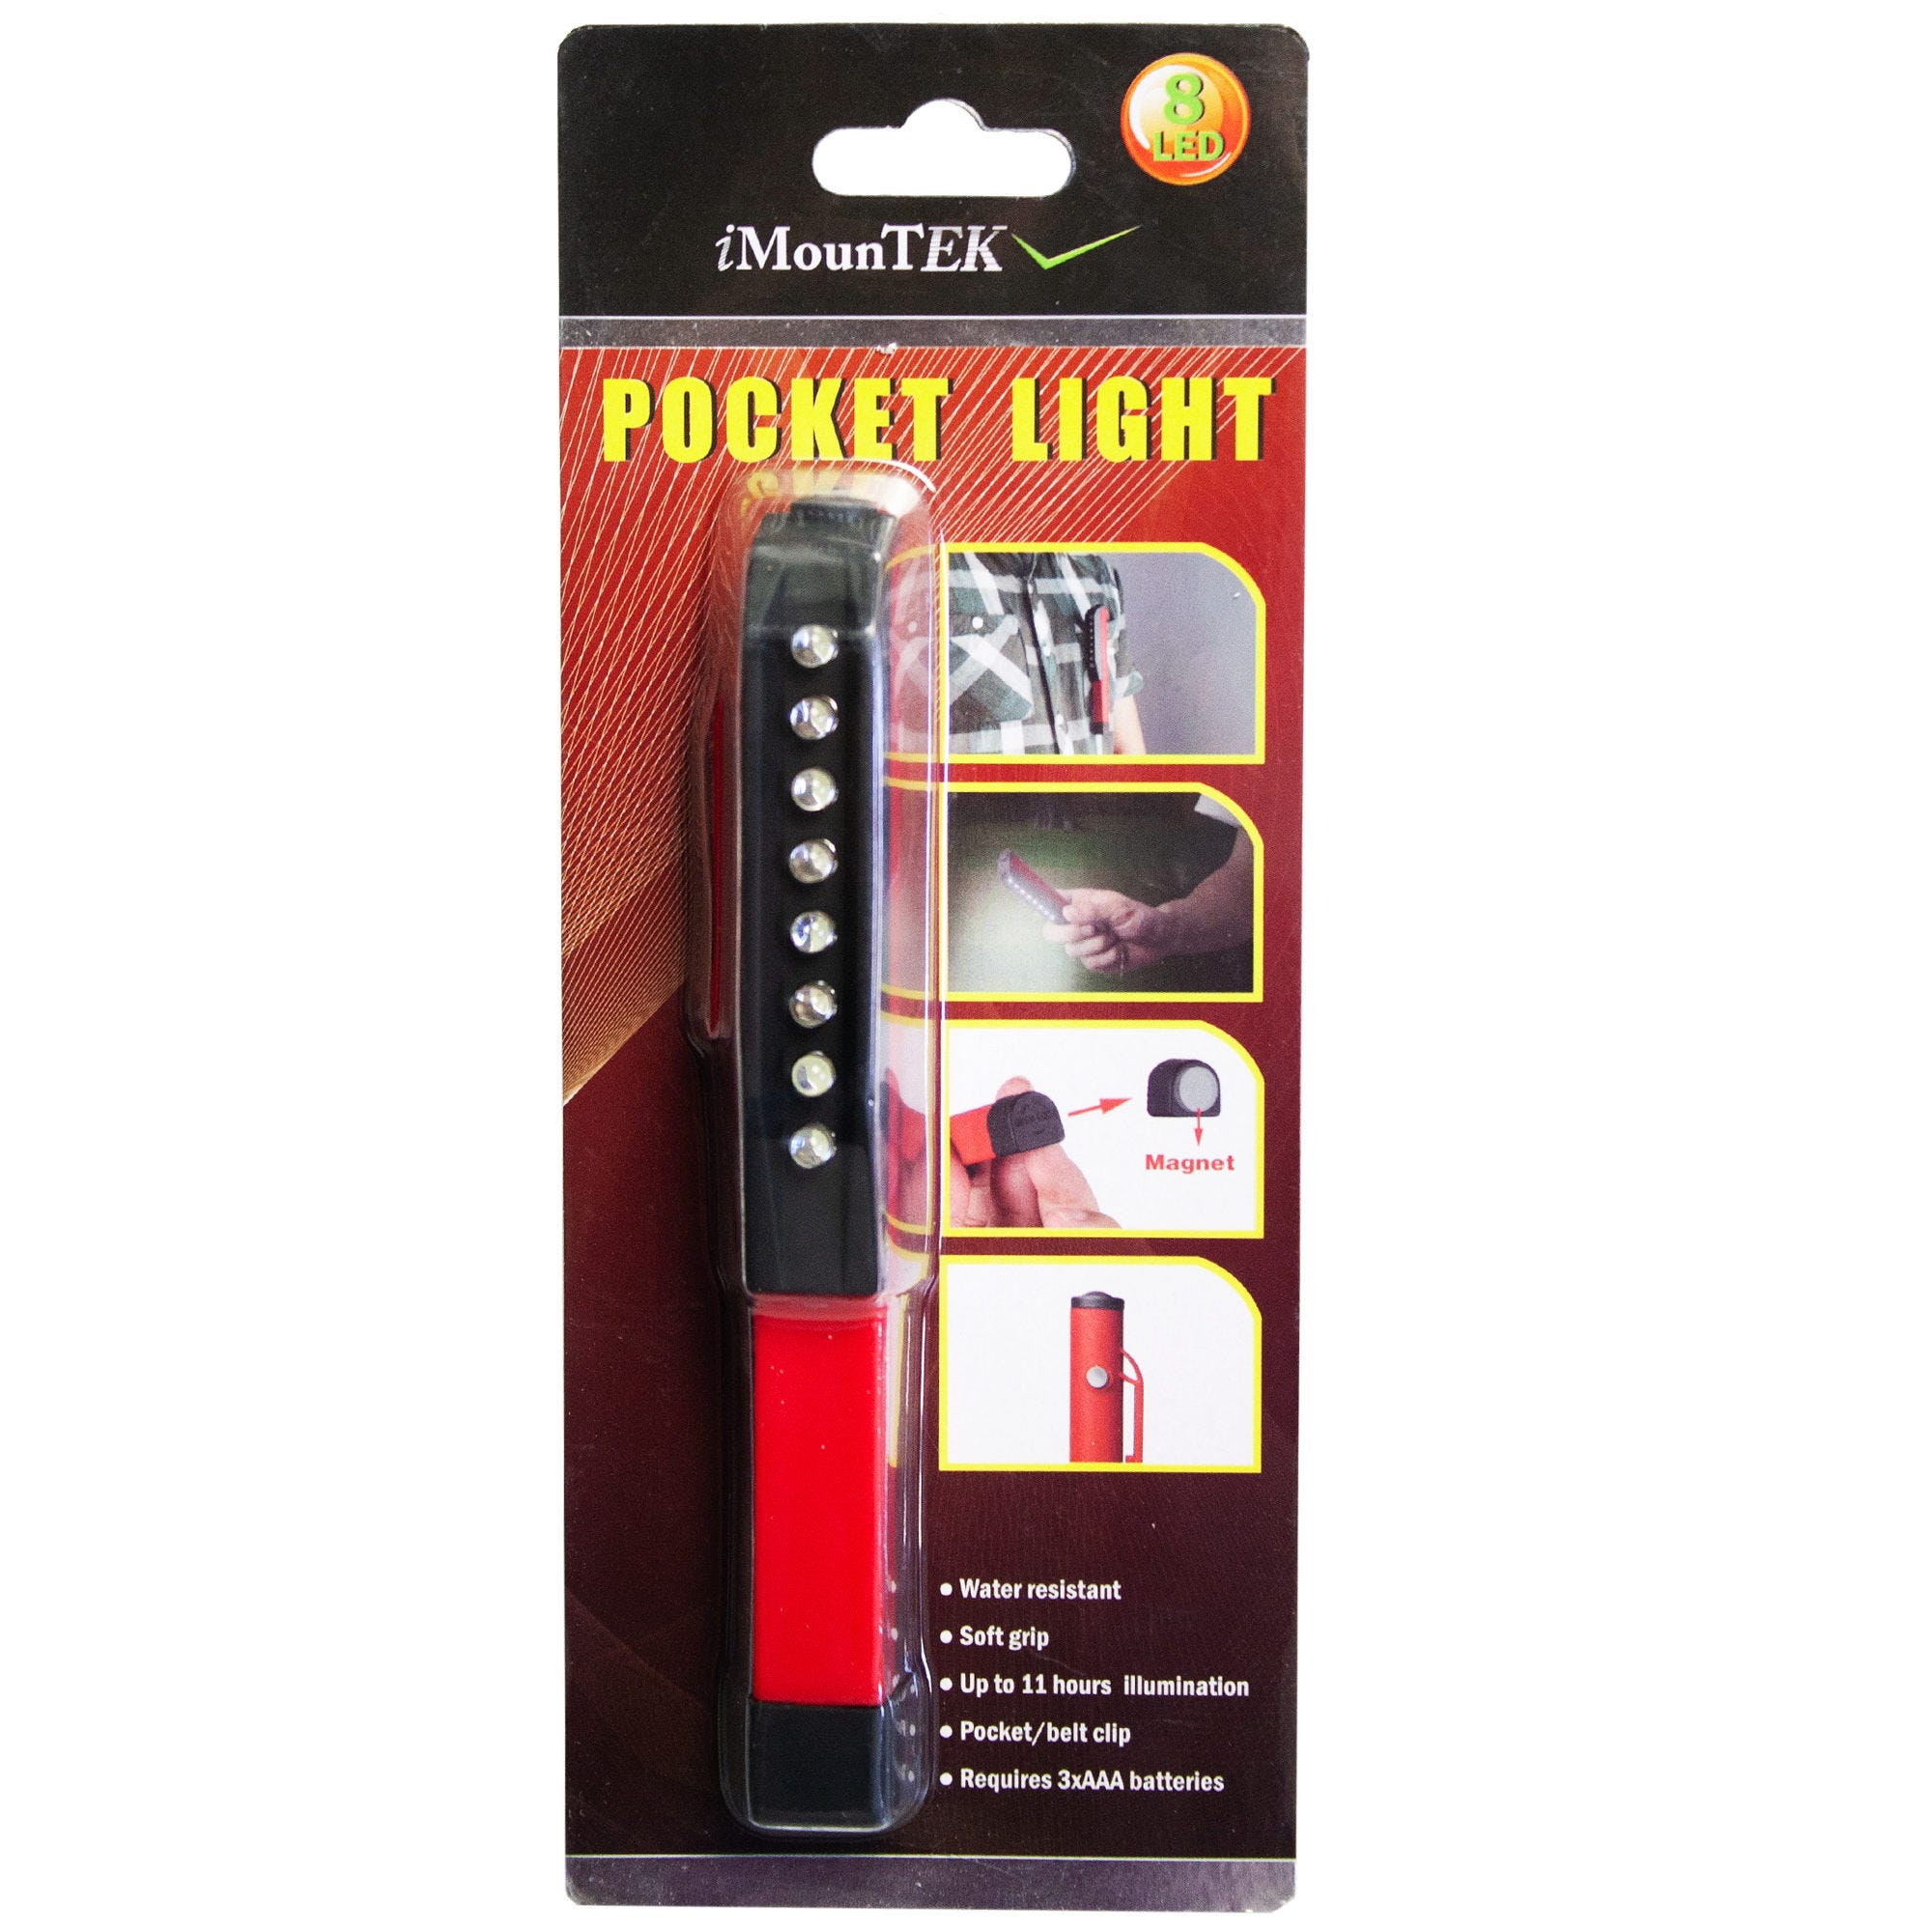 8 LED Water Resistant Pocket Light with Magnet- Qty 16